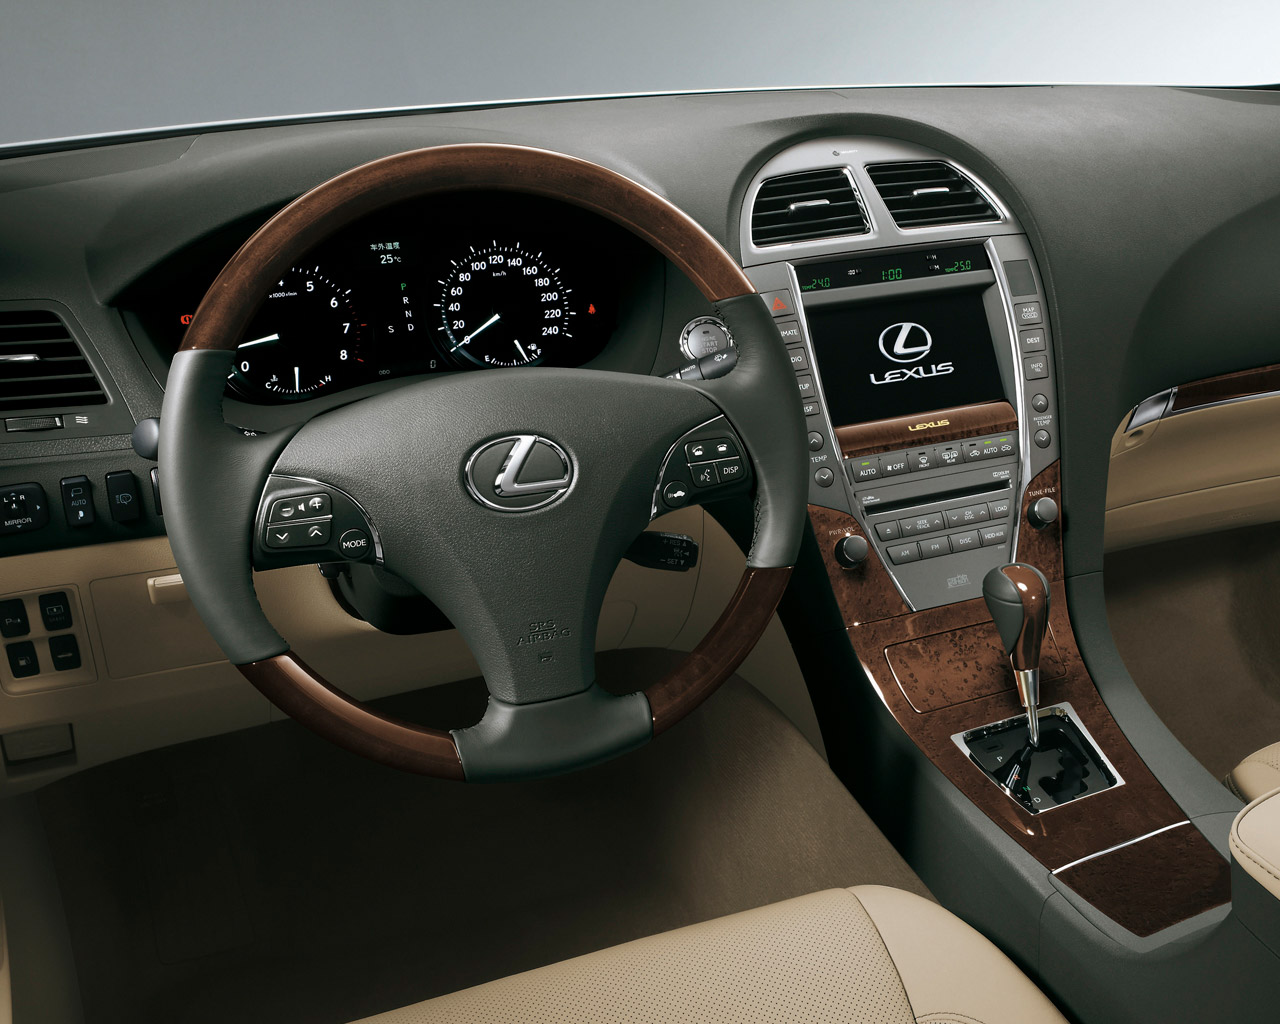 2010 lexus es 350 interior. Black Bedroom Furniture Sets. Home Design Ideas